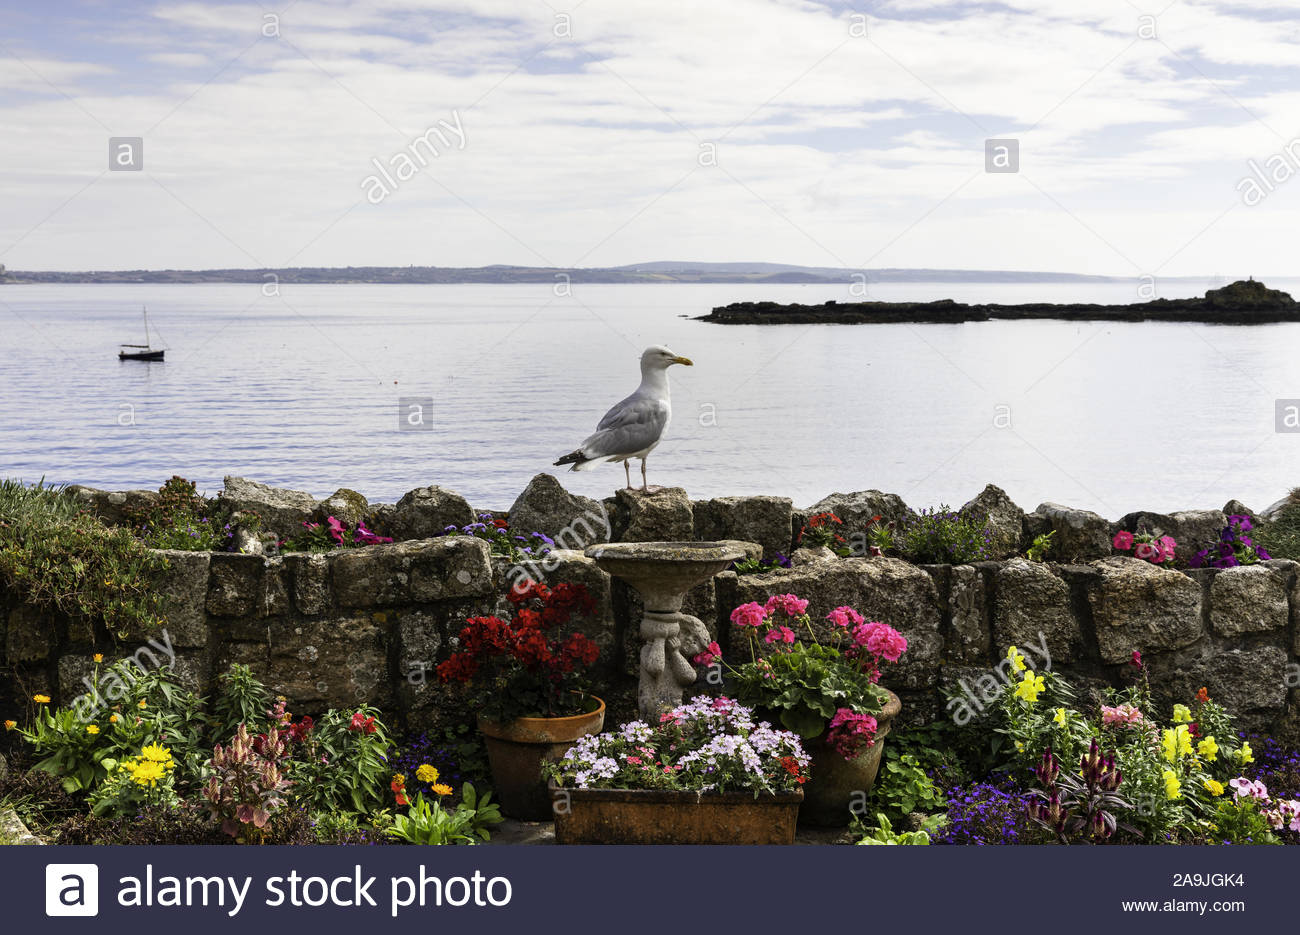 looking from gurnick street to st. clement's island, mousehole / porthenys, penzance, mount's bay, cornwall, england, great britain, uk Stock Photo